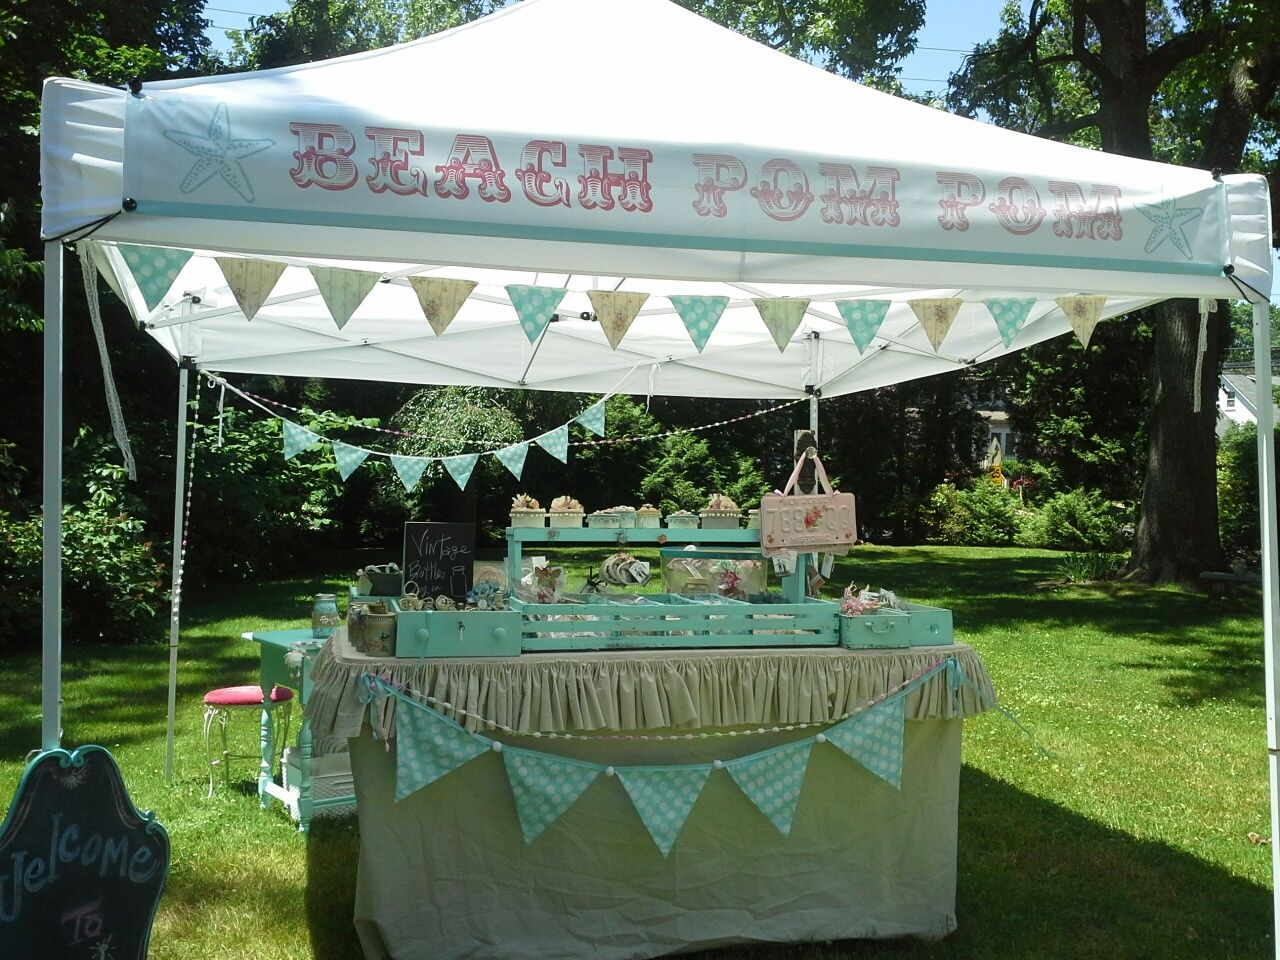 This Is My Craft Show Tent I Sell At Shows By The Beach